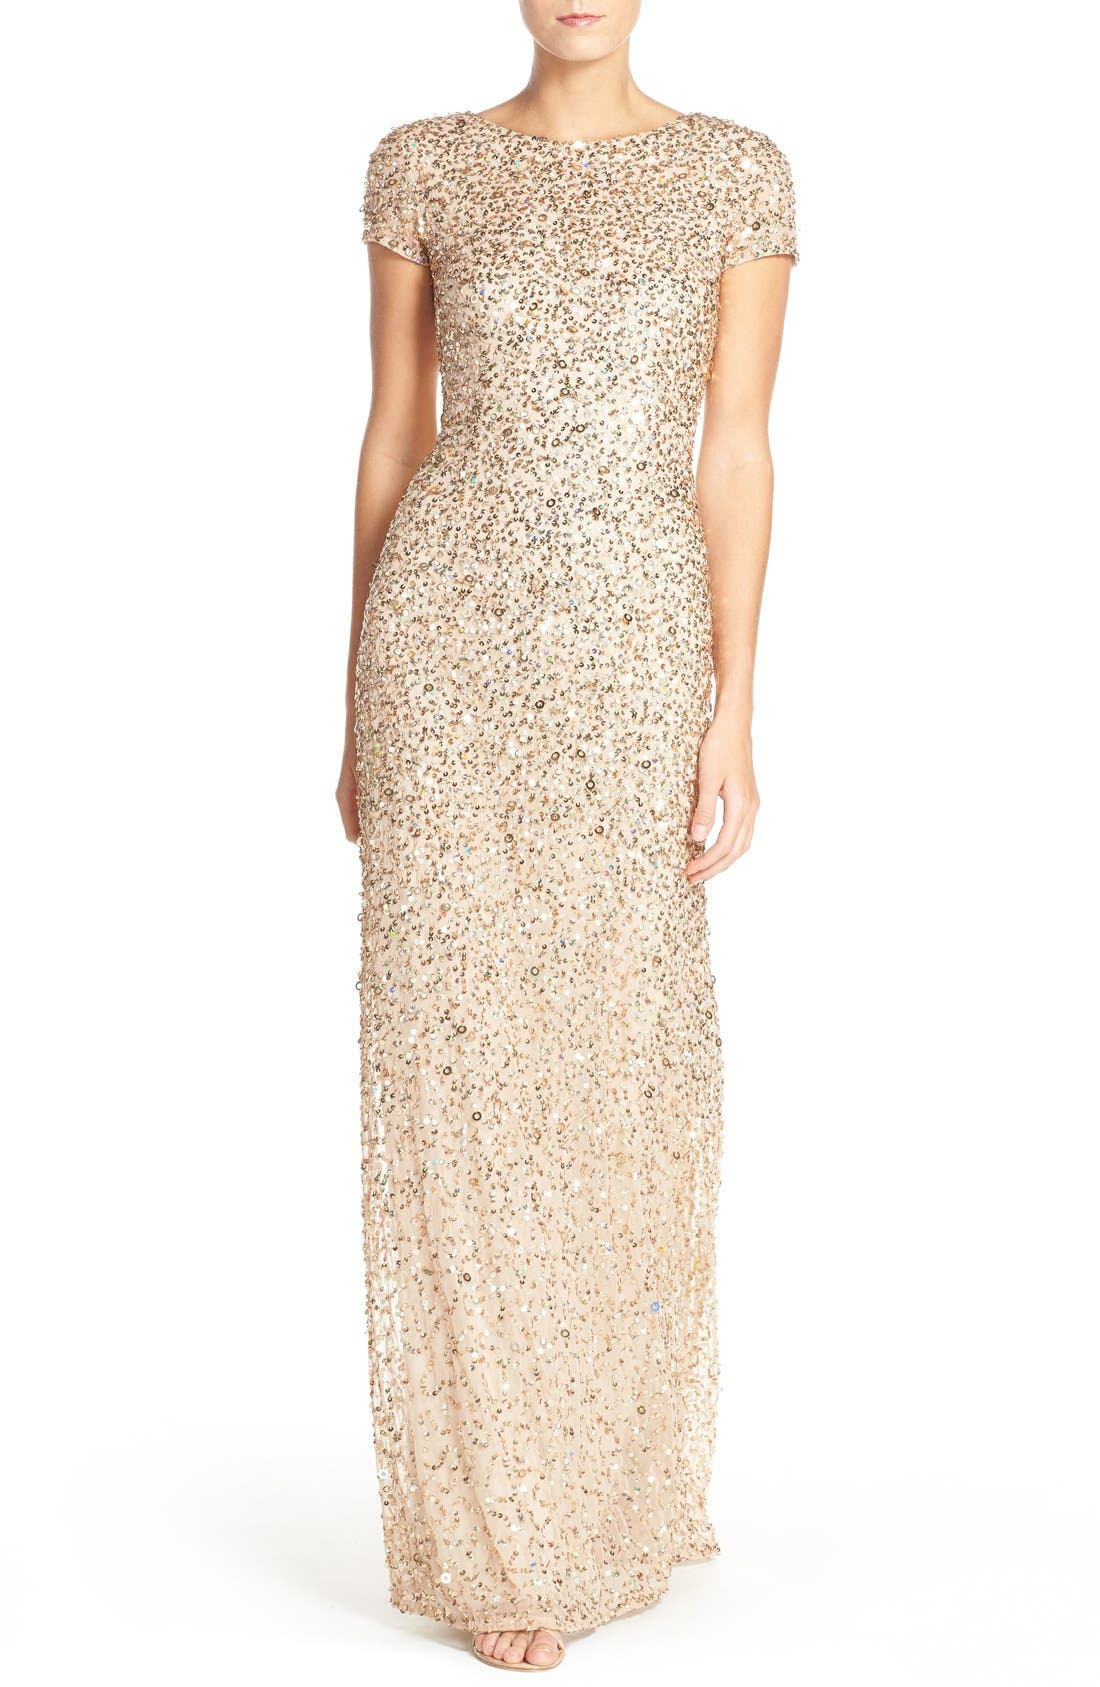 Main Image - Adrianna Papell Short Sleeve Sequin Mesh Gown (Regular & Petite)